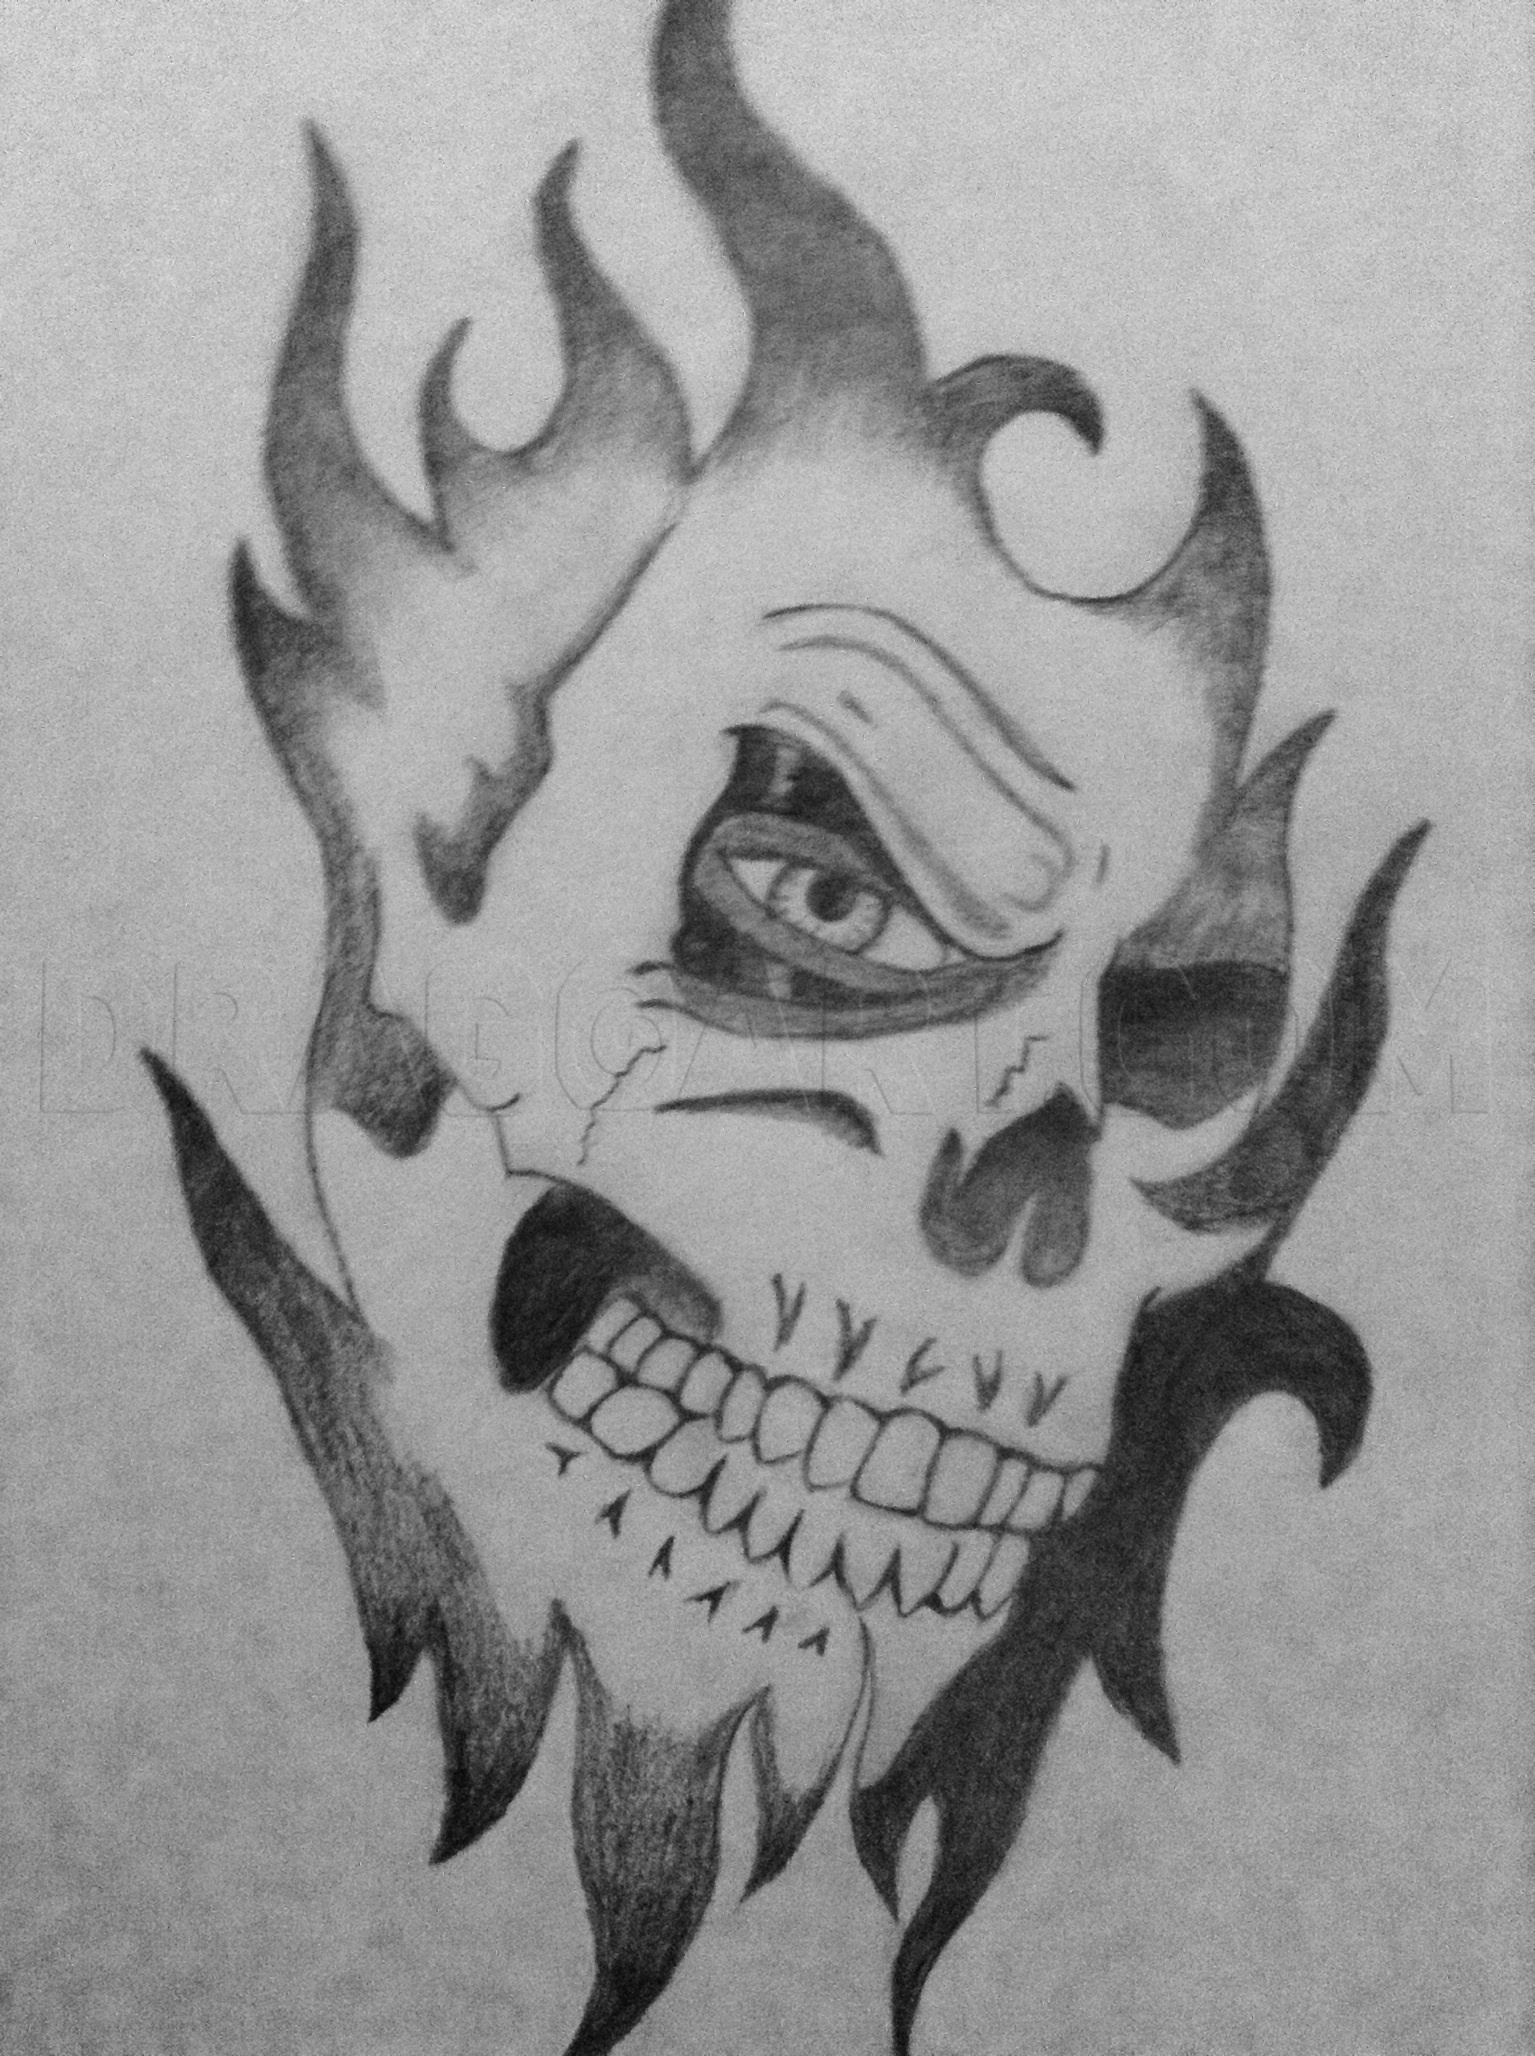 Cool Skull Sketch : skull, sketch, Awesome, Skull,, Step,, Drawing, Guide,, XxxkimyxxX, Dragoart.com